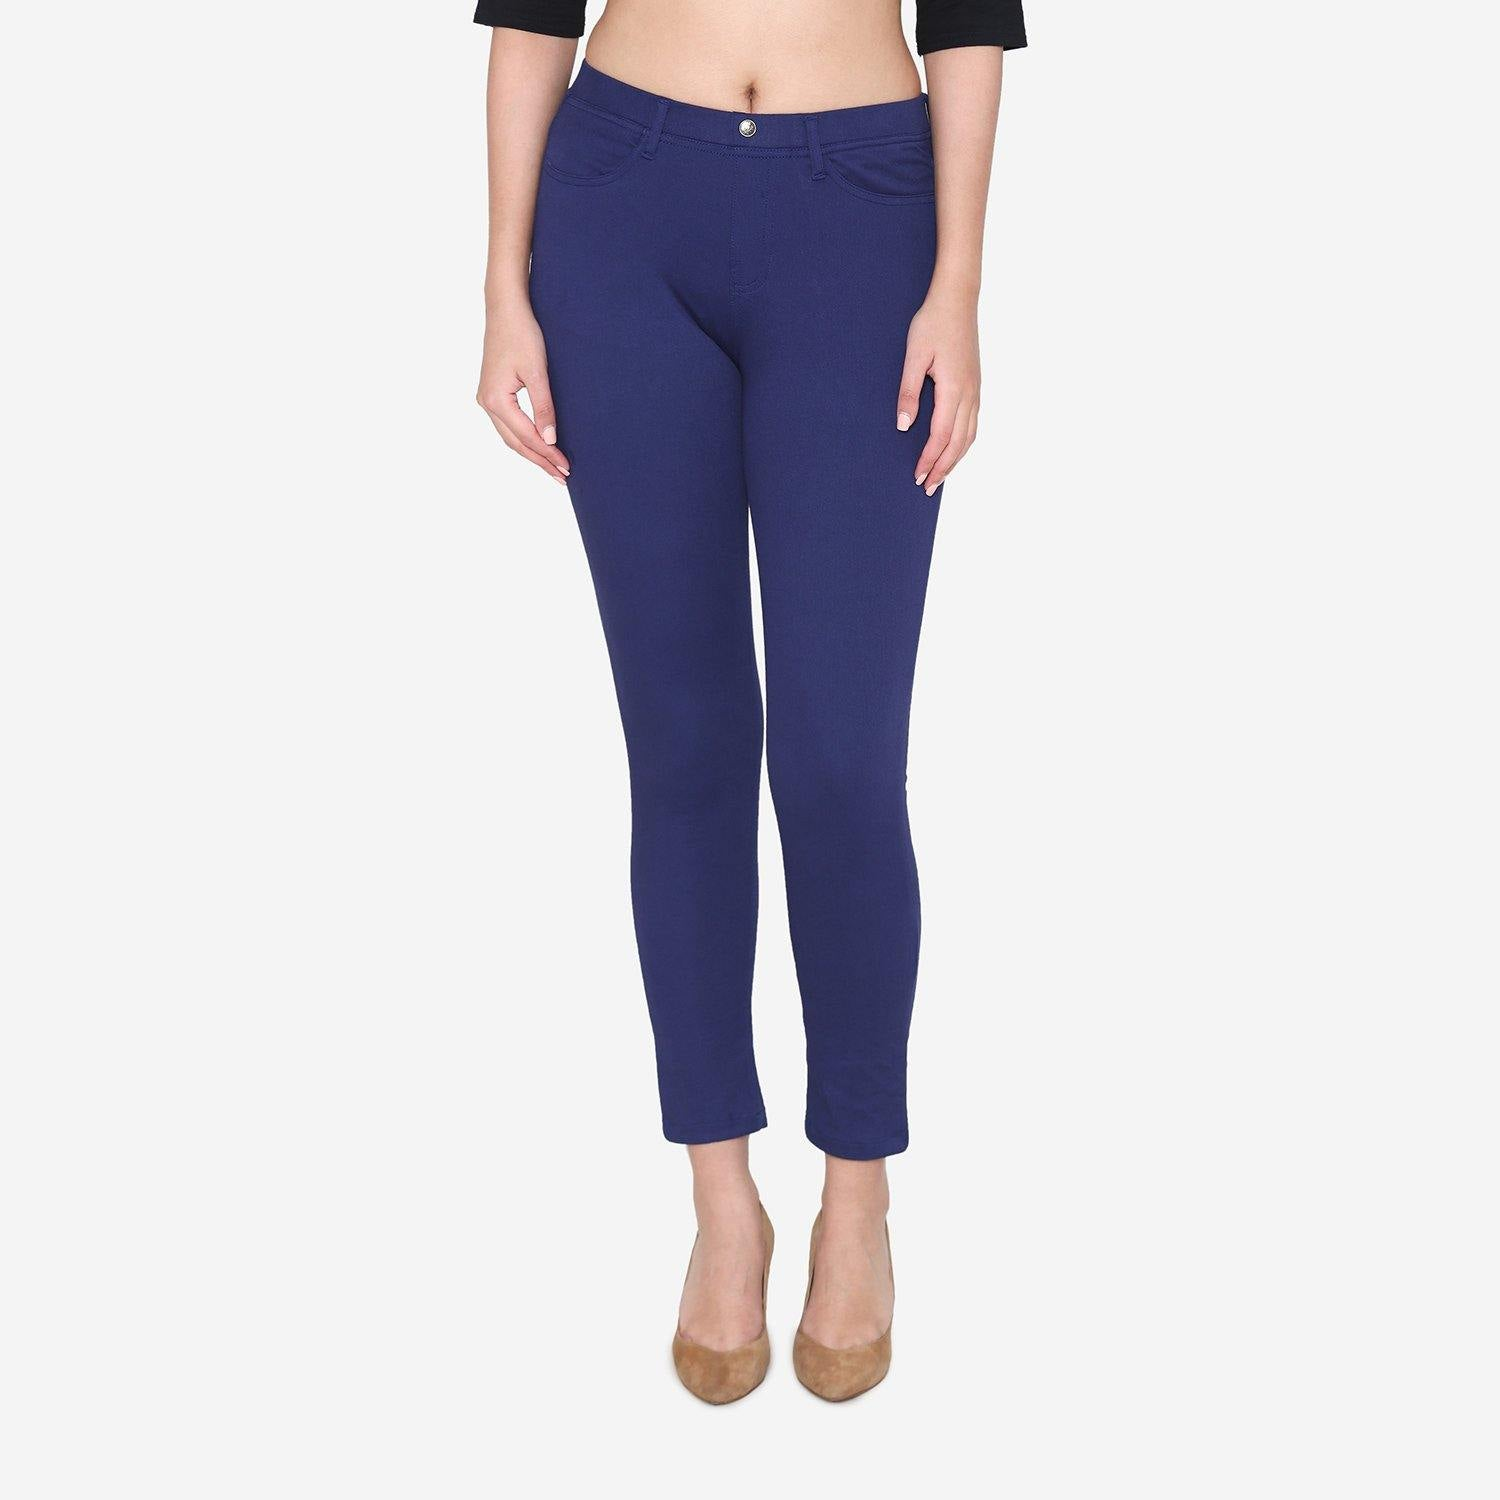 Vami Women's  Cotton Stretchable Jeggings - Ink Blue